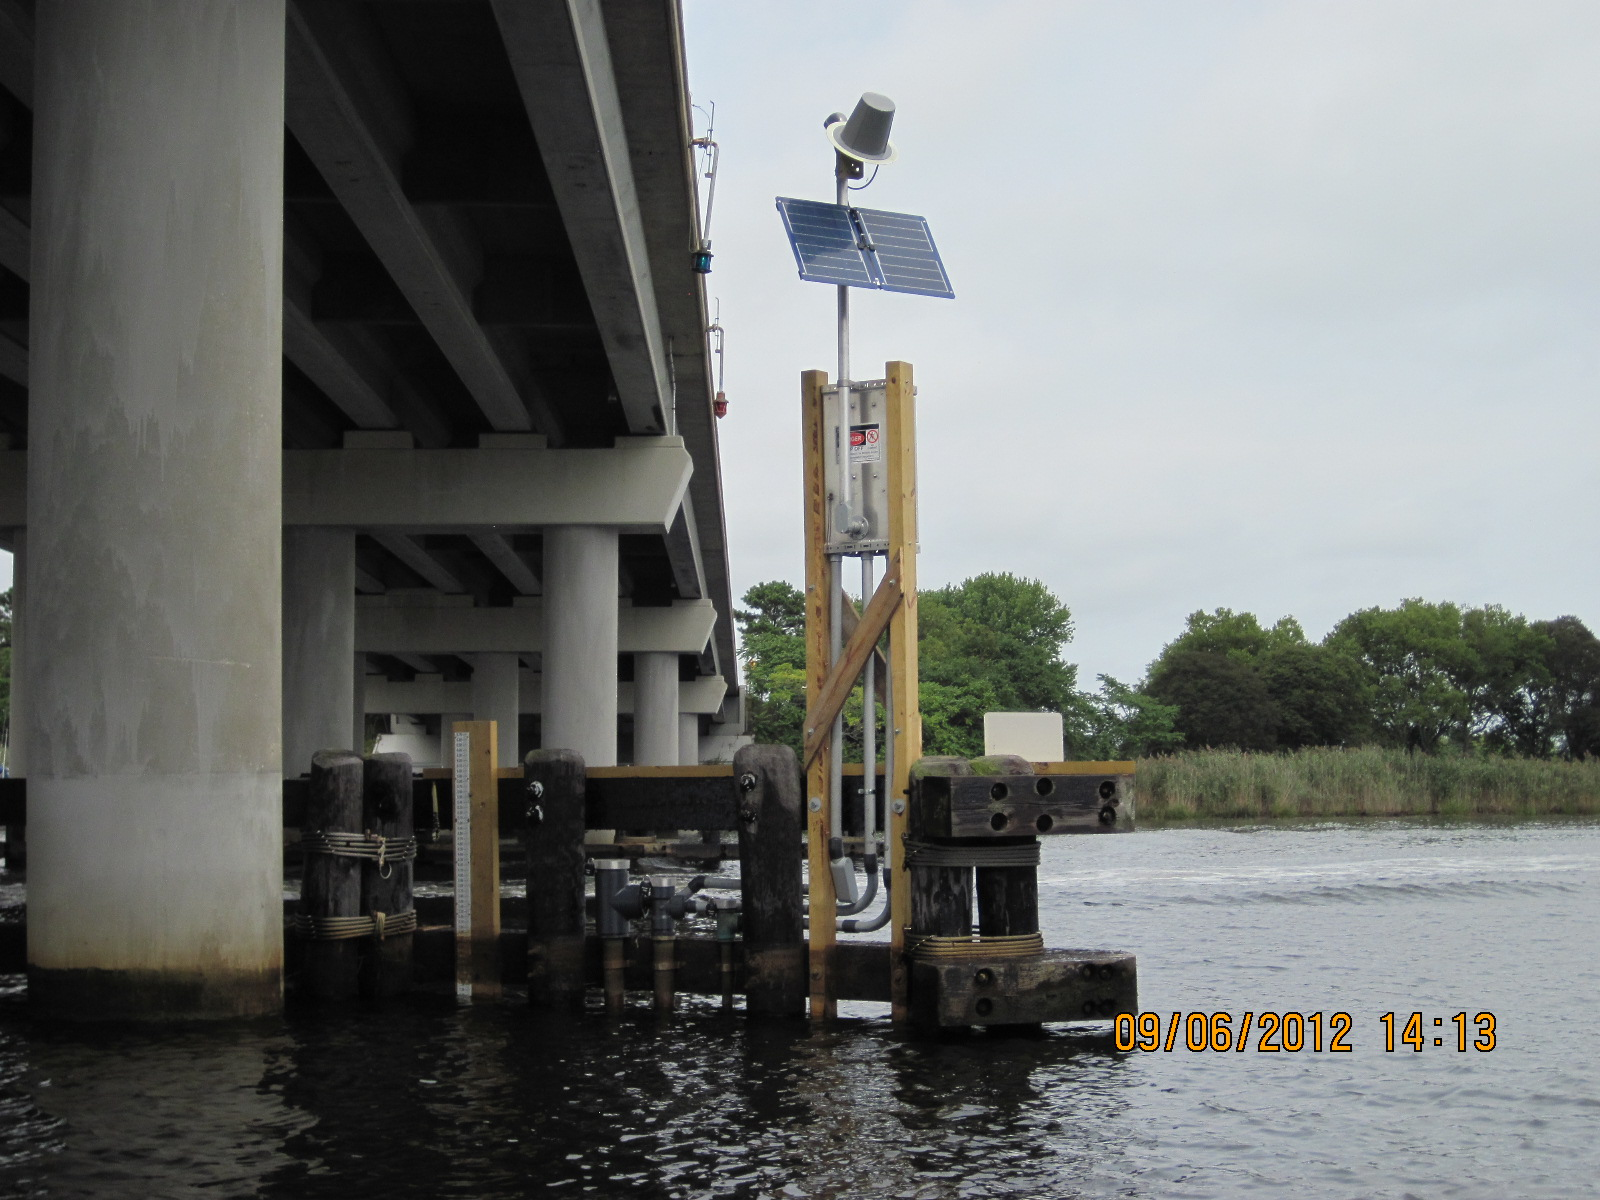 Photo of station on PECONIC RIVER AT COUNTY HIGHWAY 105 AT RIVERHEAD, NY